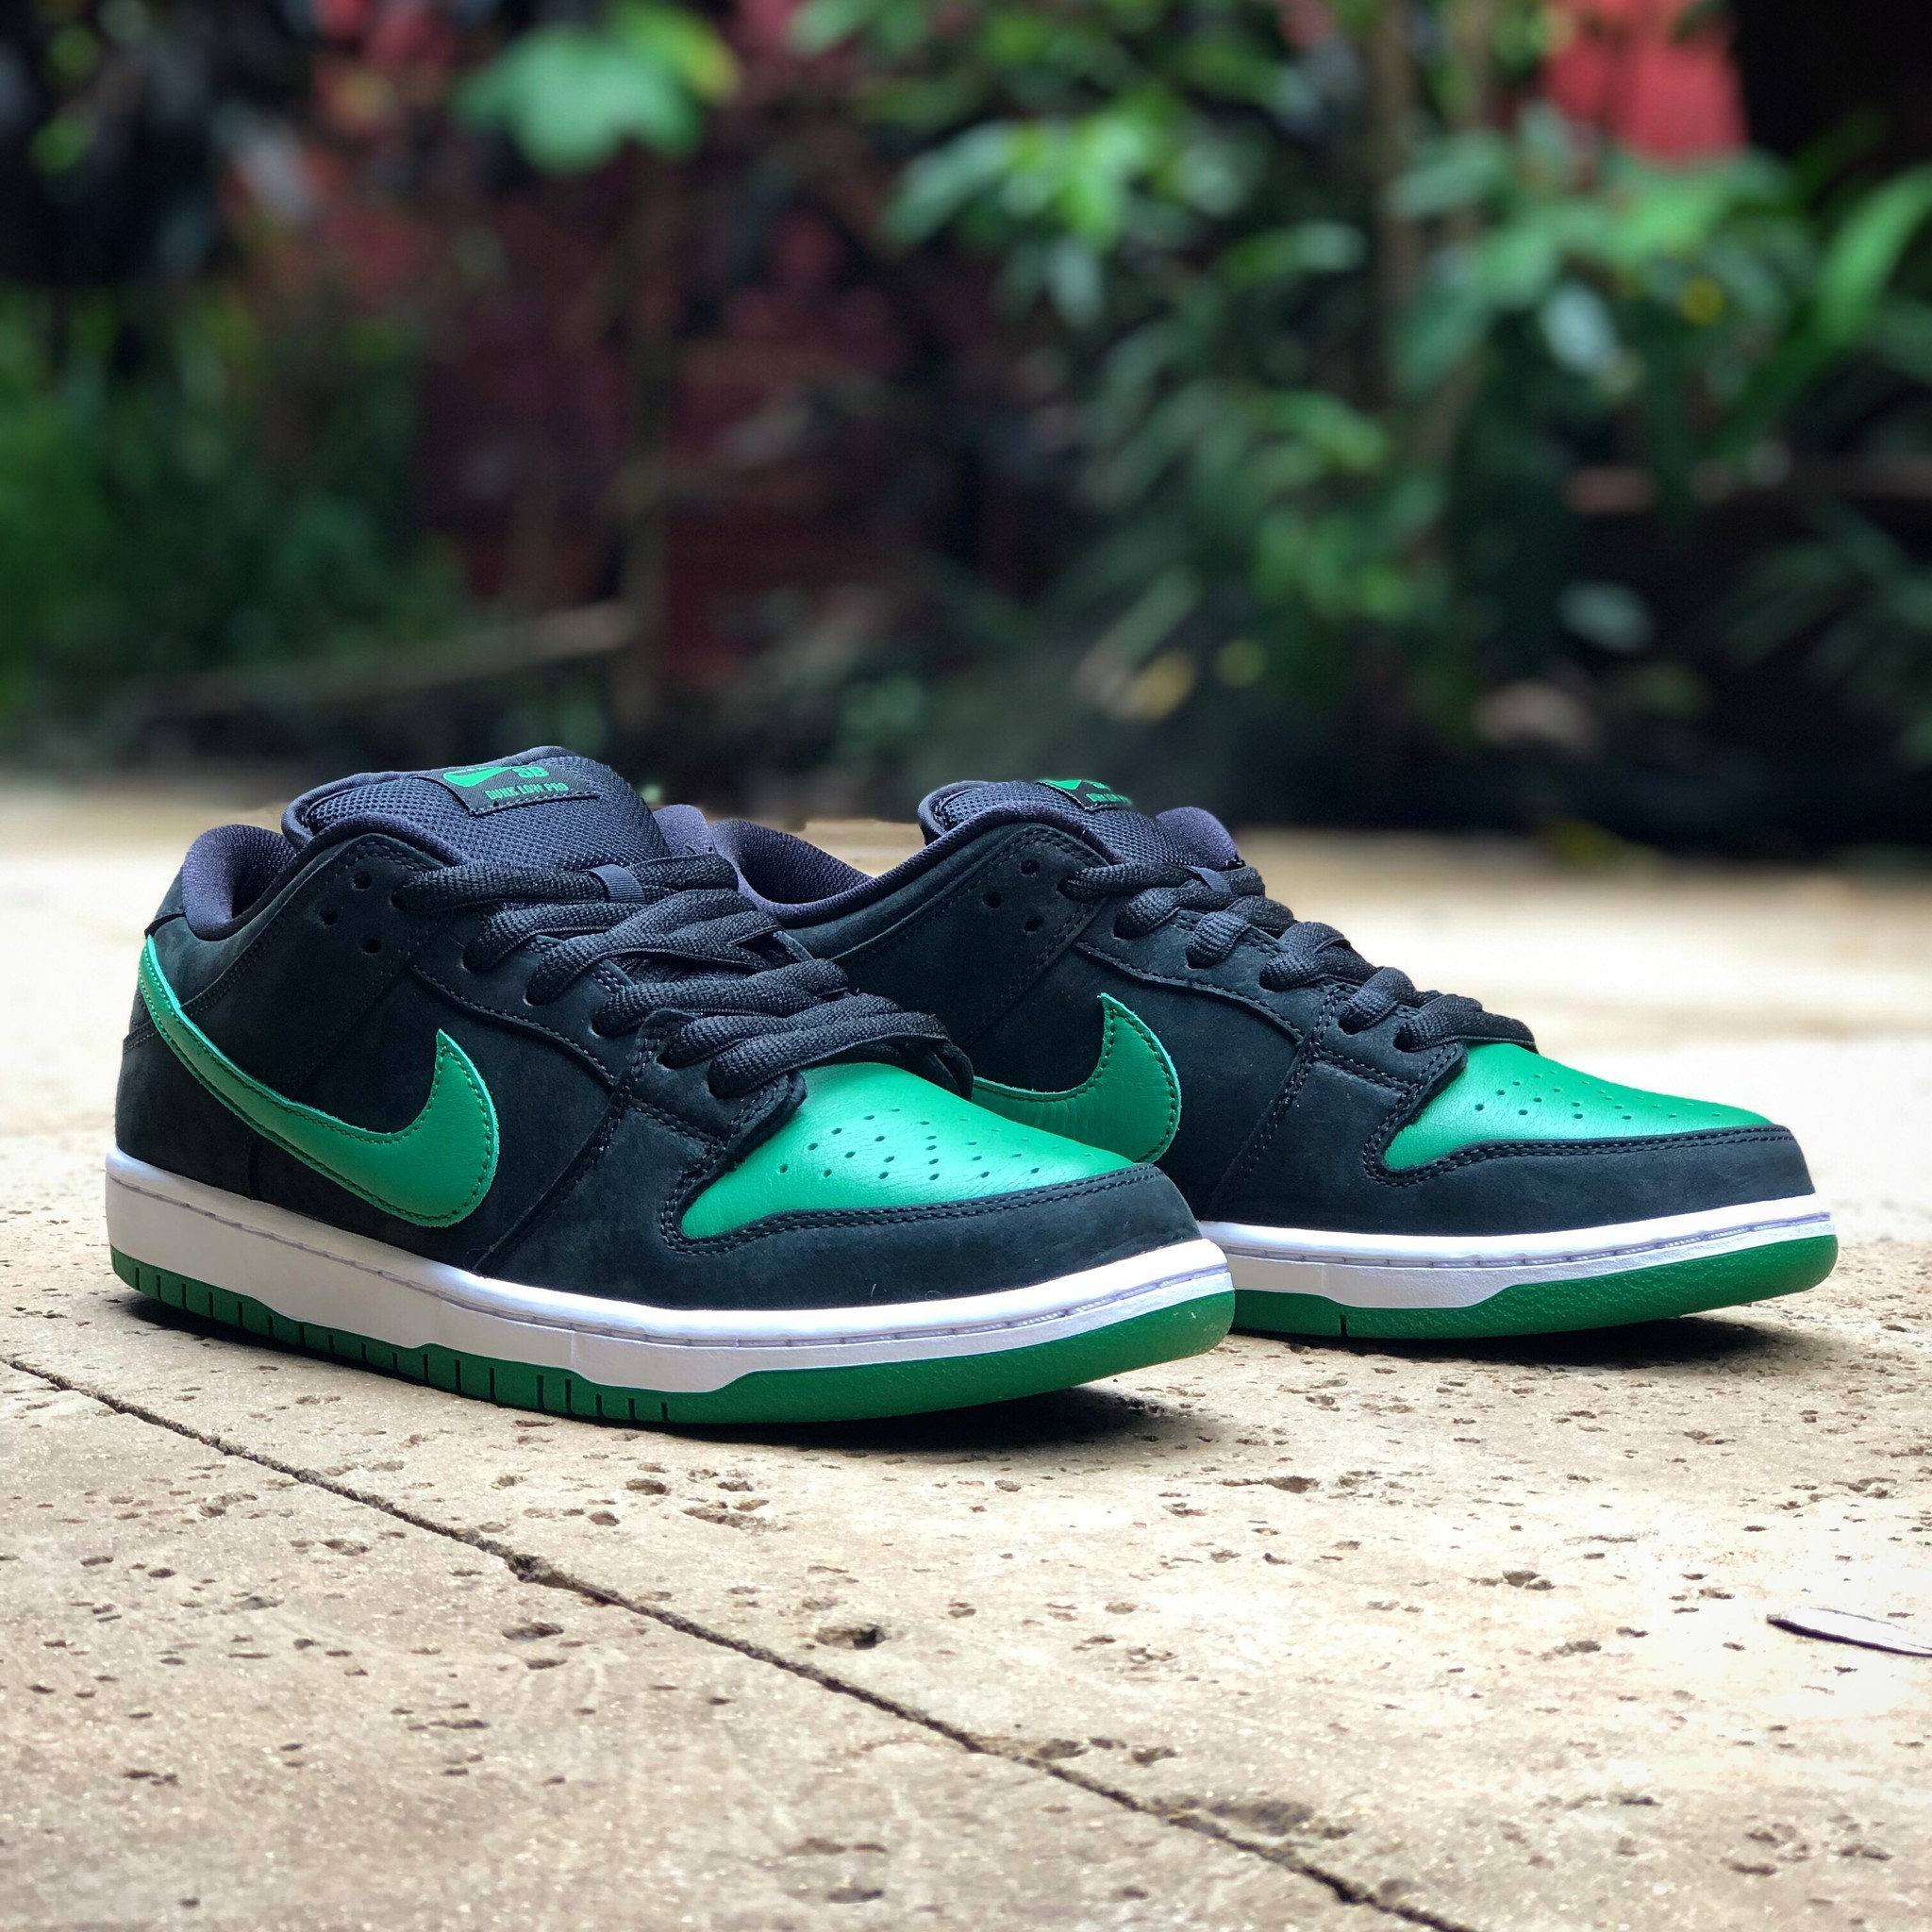 low priced 62fff a2efc Nike SB Dunk Low Pro Black/Pine